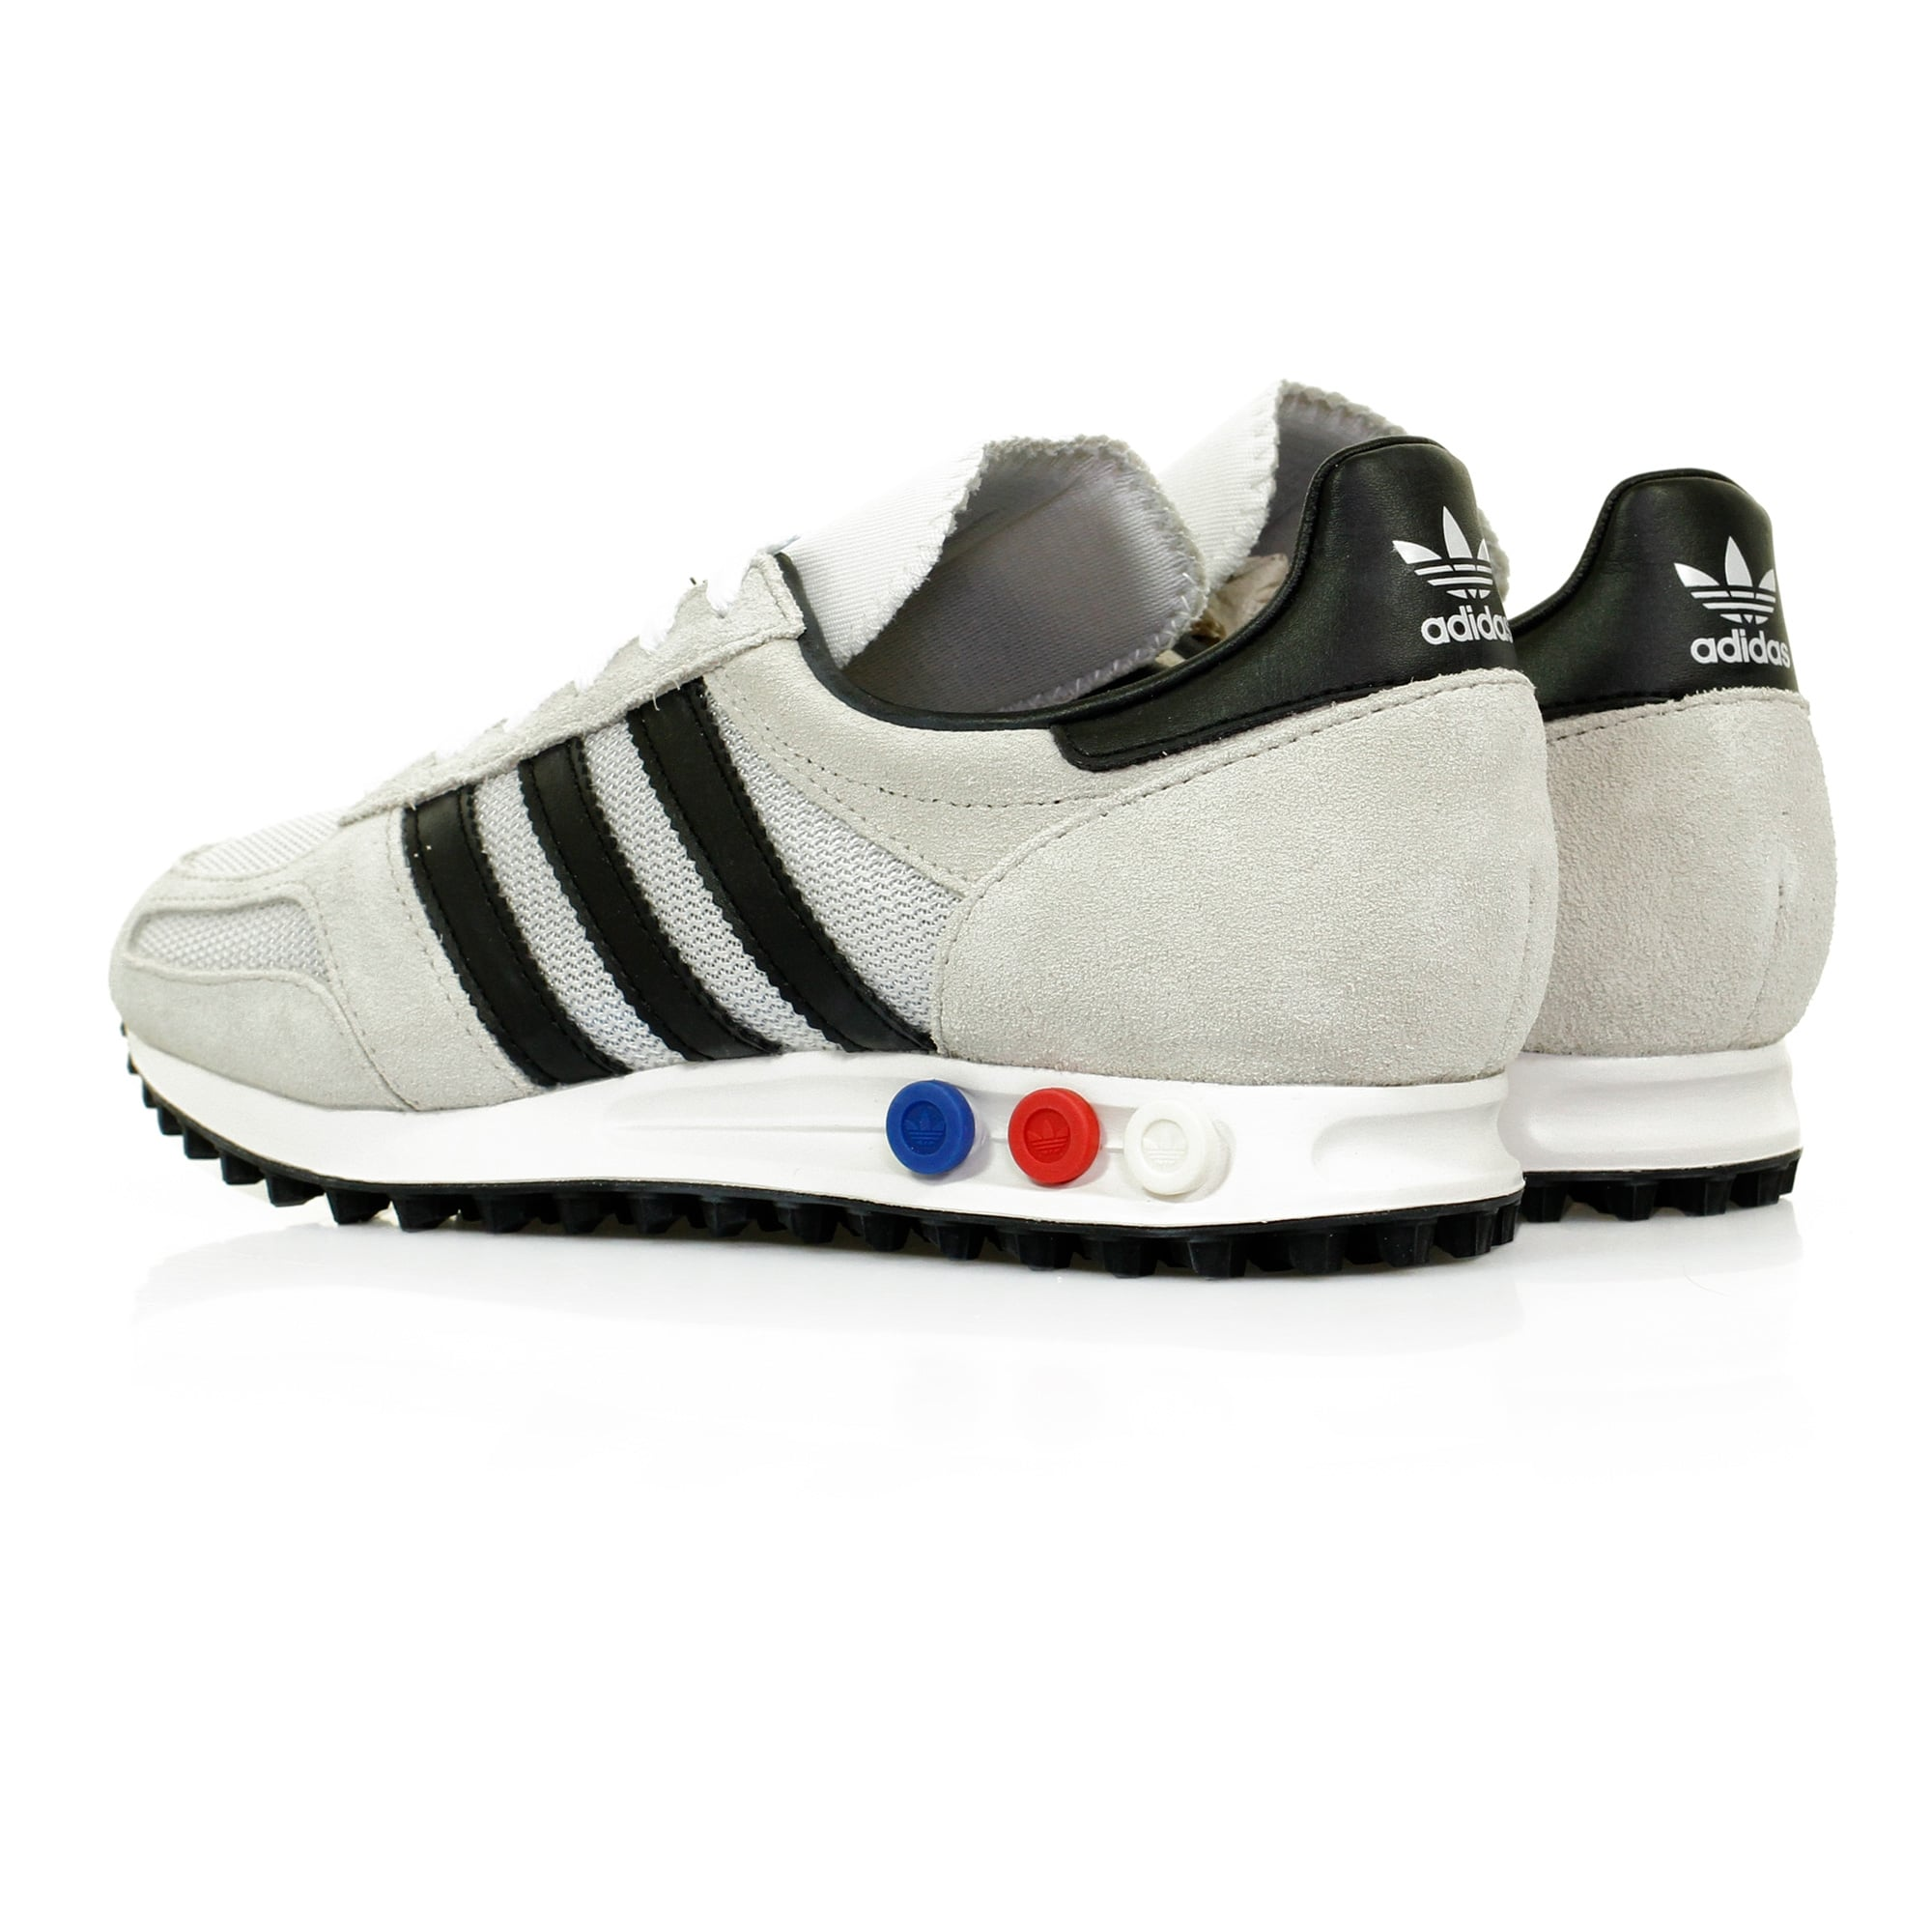 low priced c483d 243e5 Adidas La Trainer Shoes